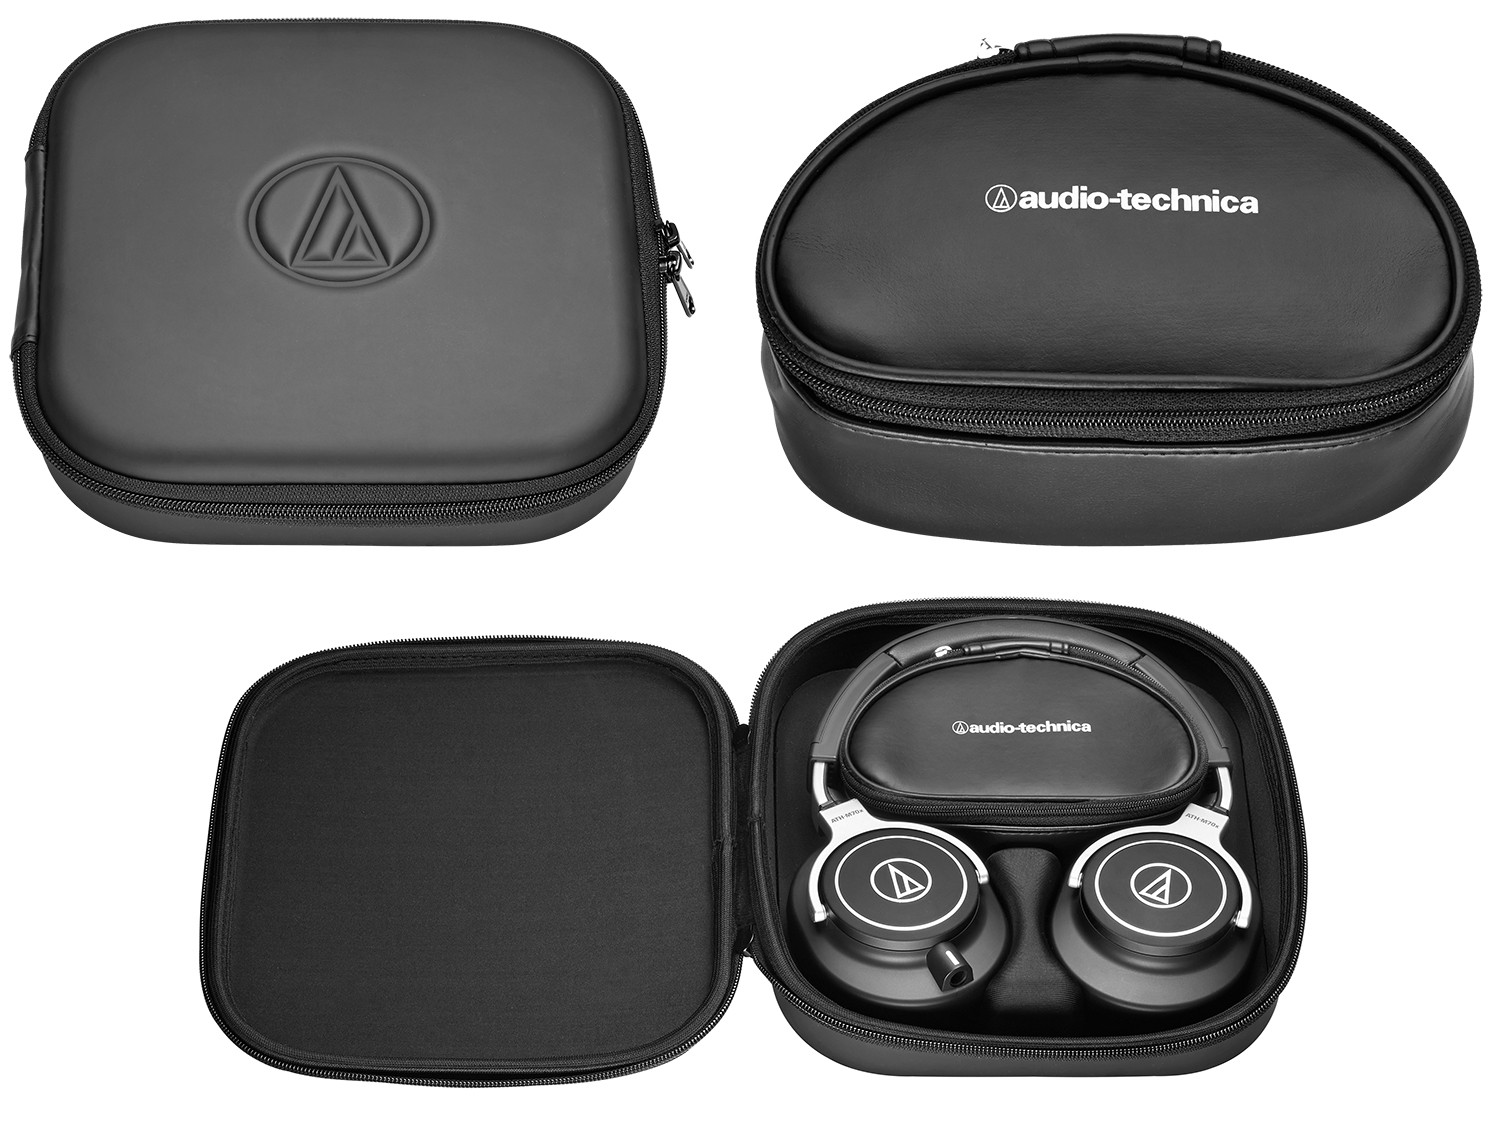 Audio Technica Ath M70x Studio Headphones Review The Wire Realm M20x Black Nifty Case We Get With